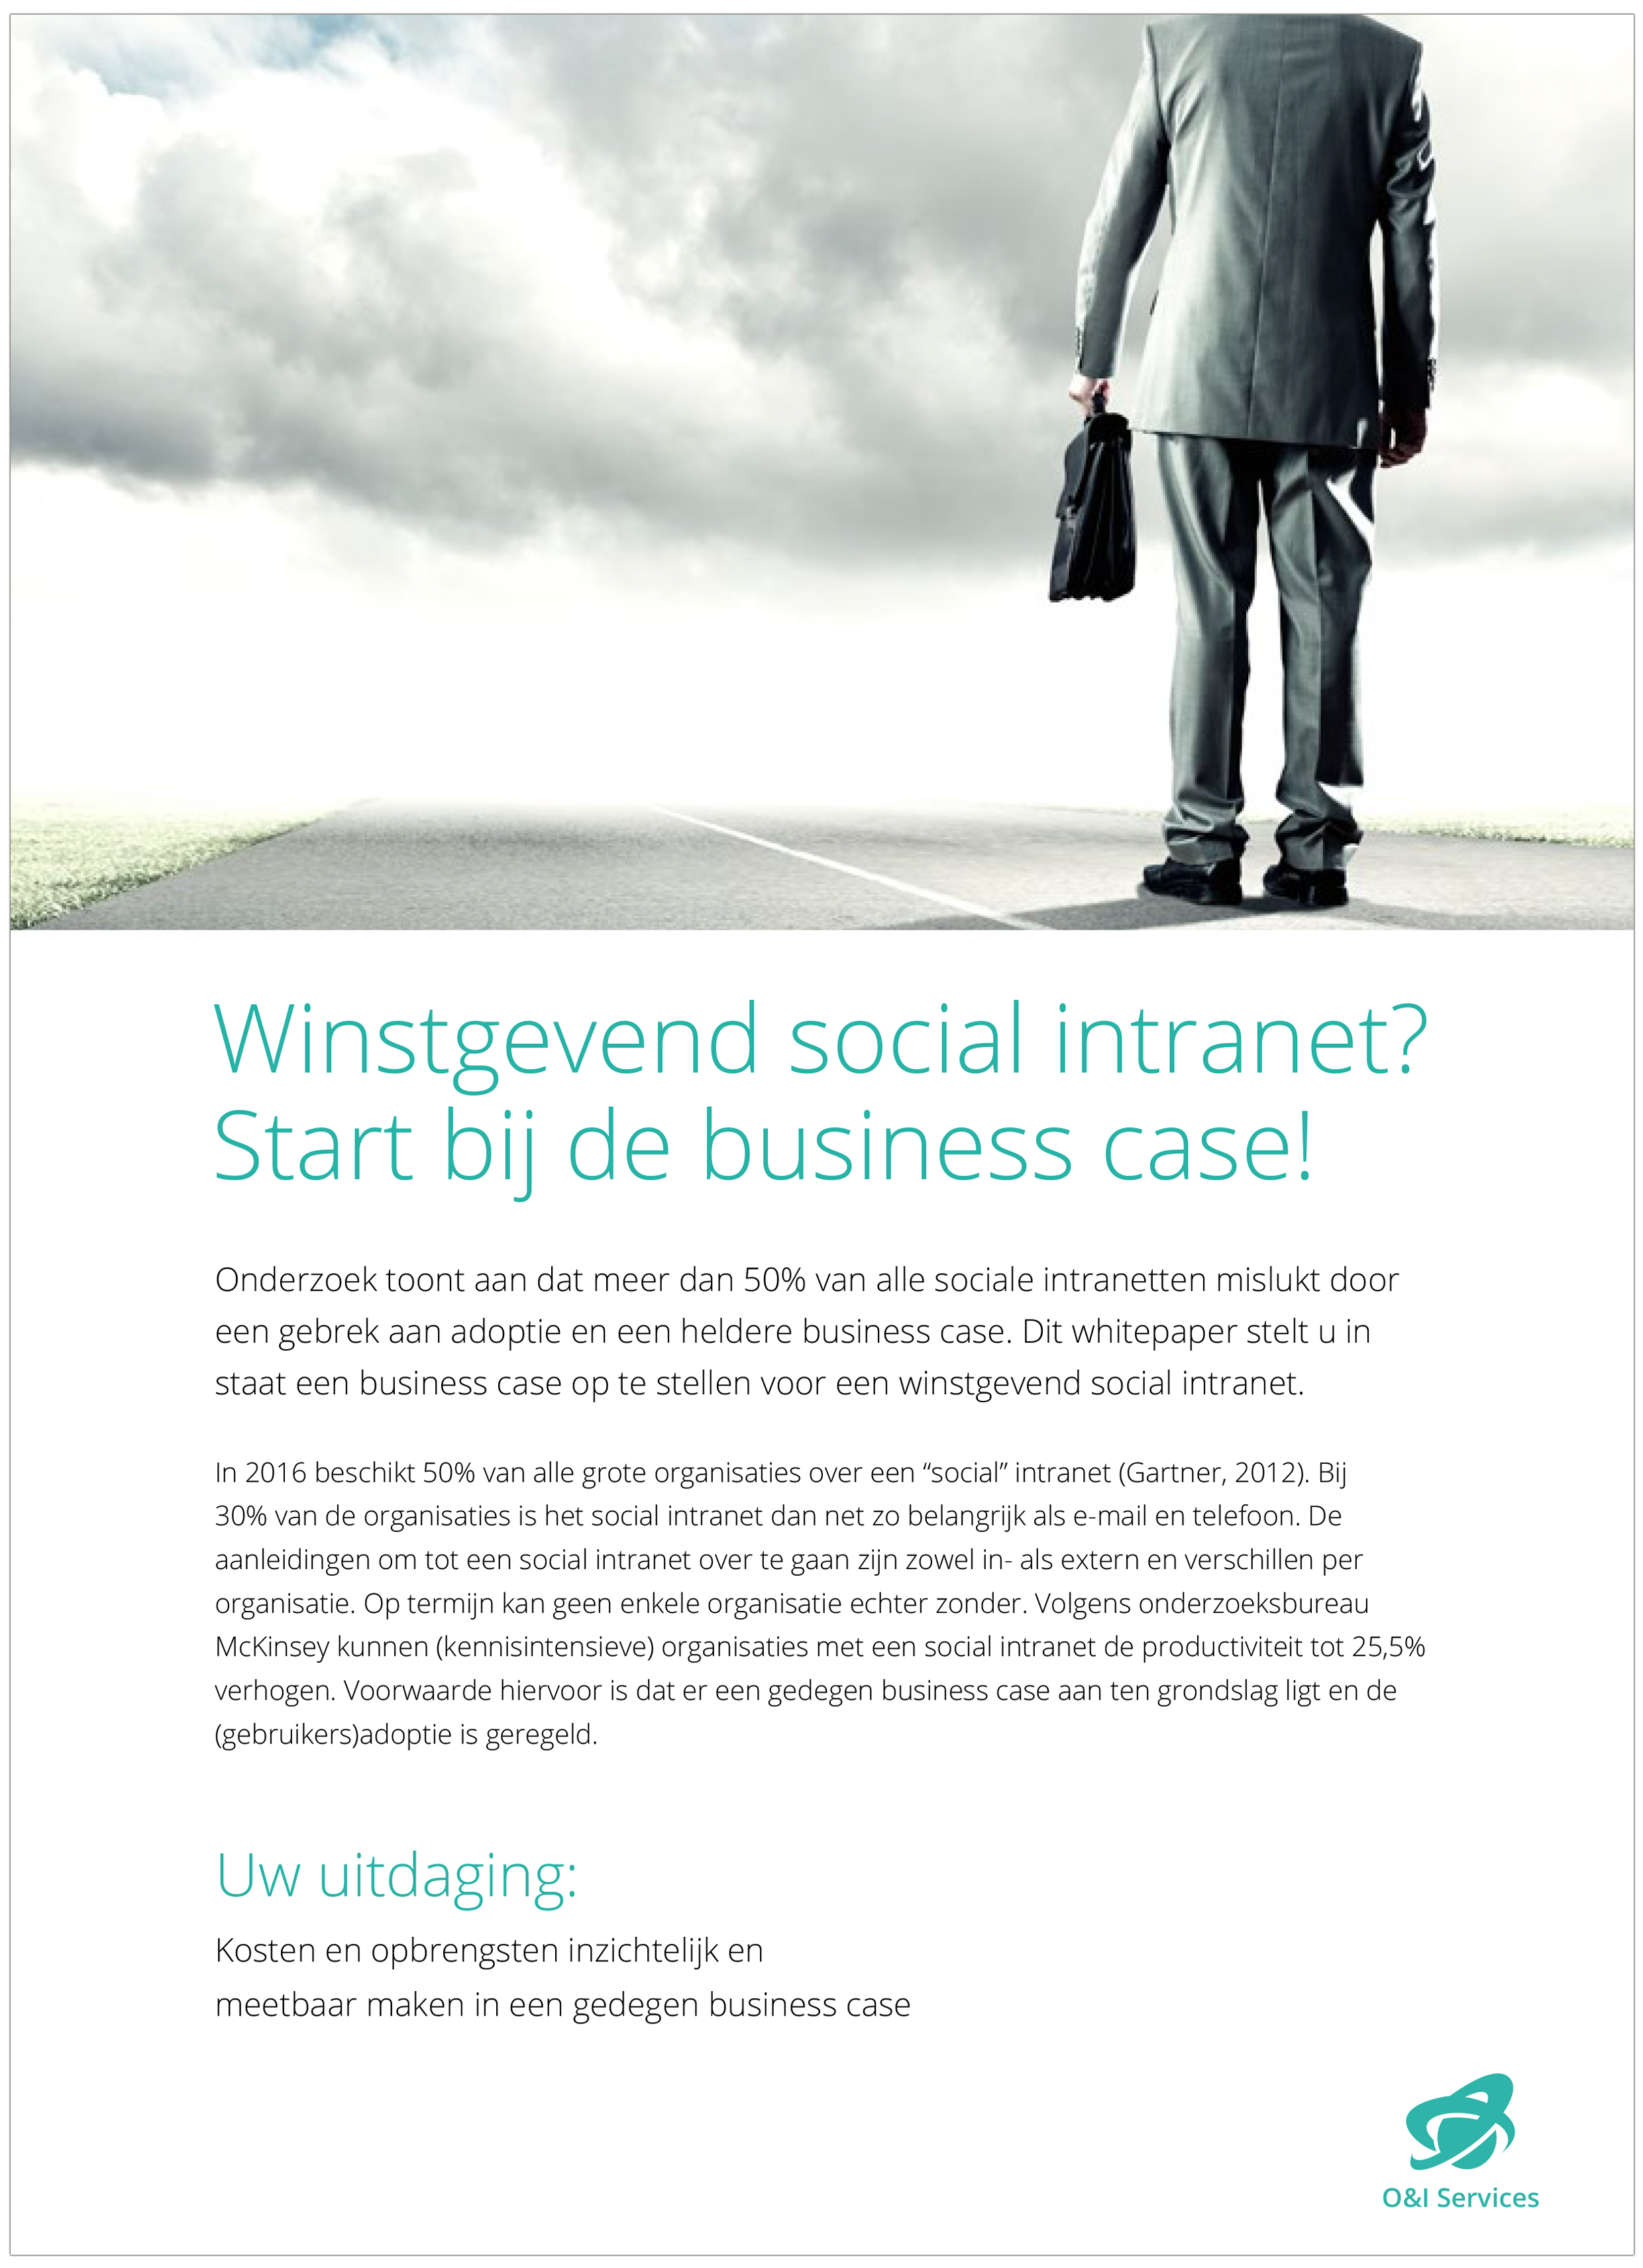 Winstgevend social intranet? Start bij de Business Case